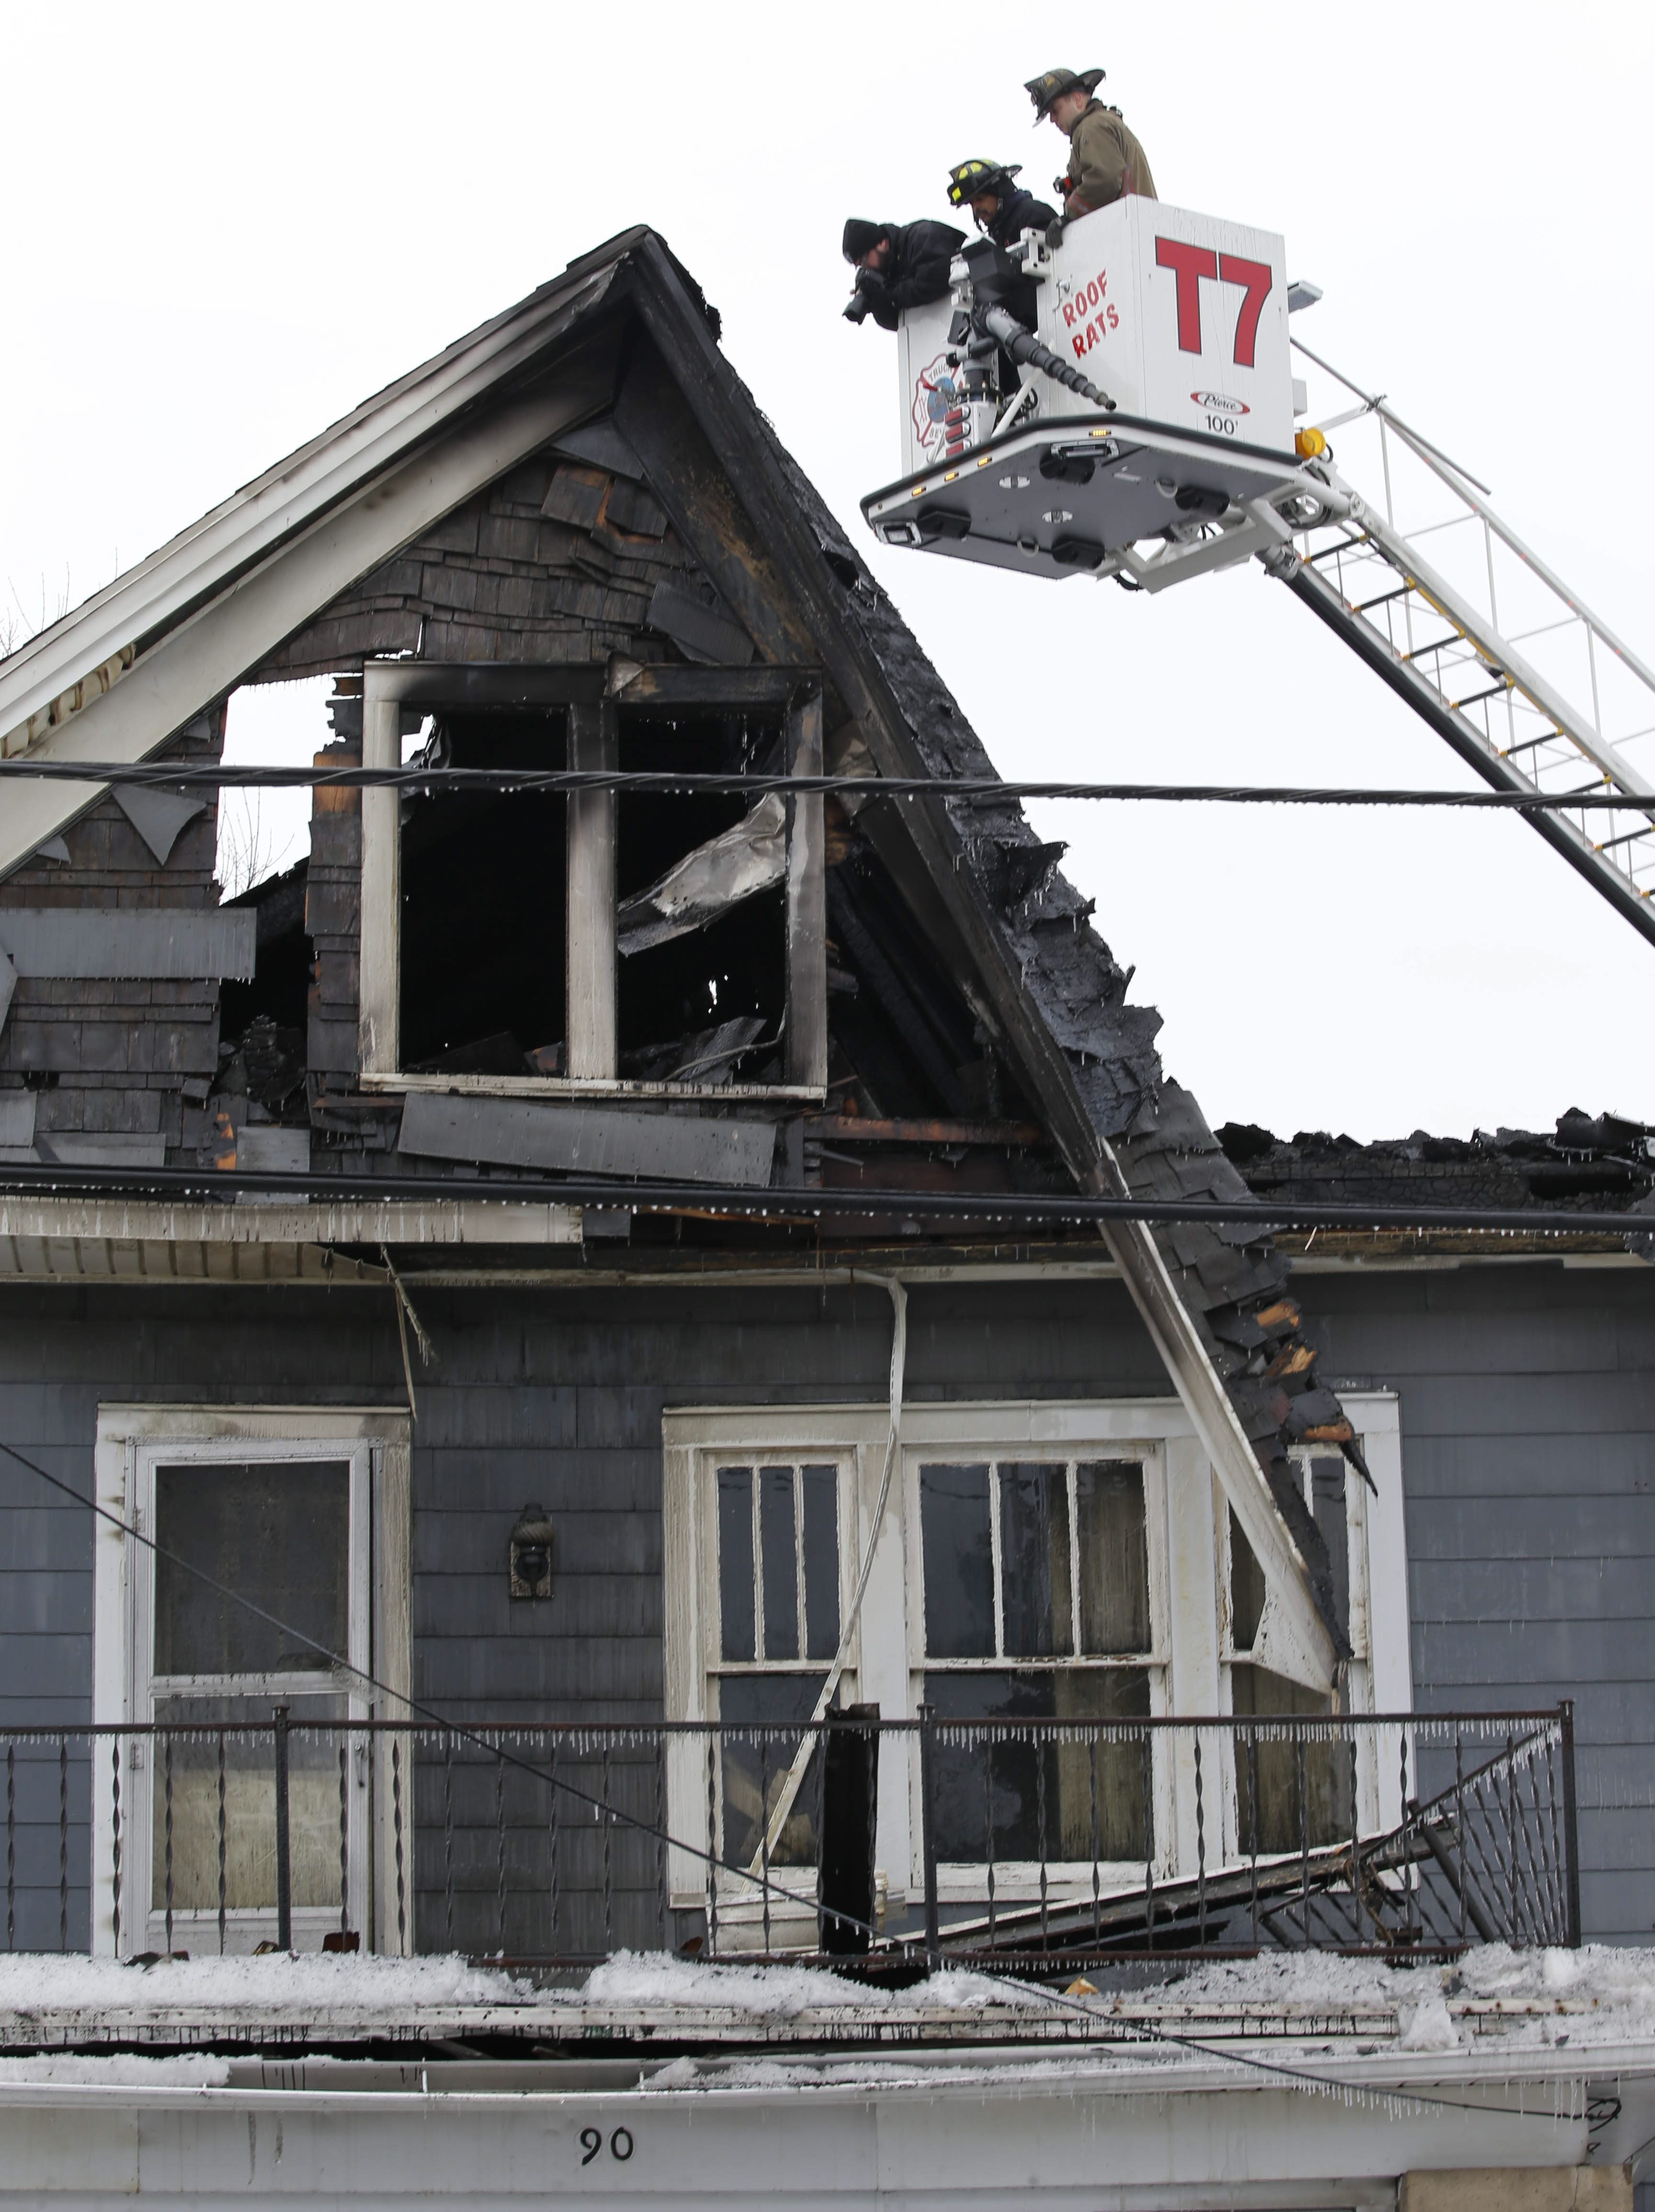 Police and fire investigators use a ladder truck to collect photographic evidence of Friday's fire.